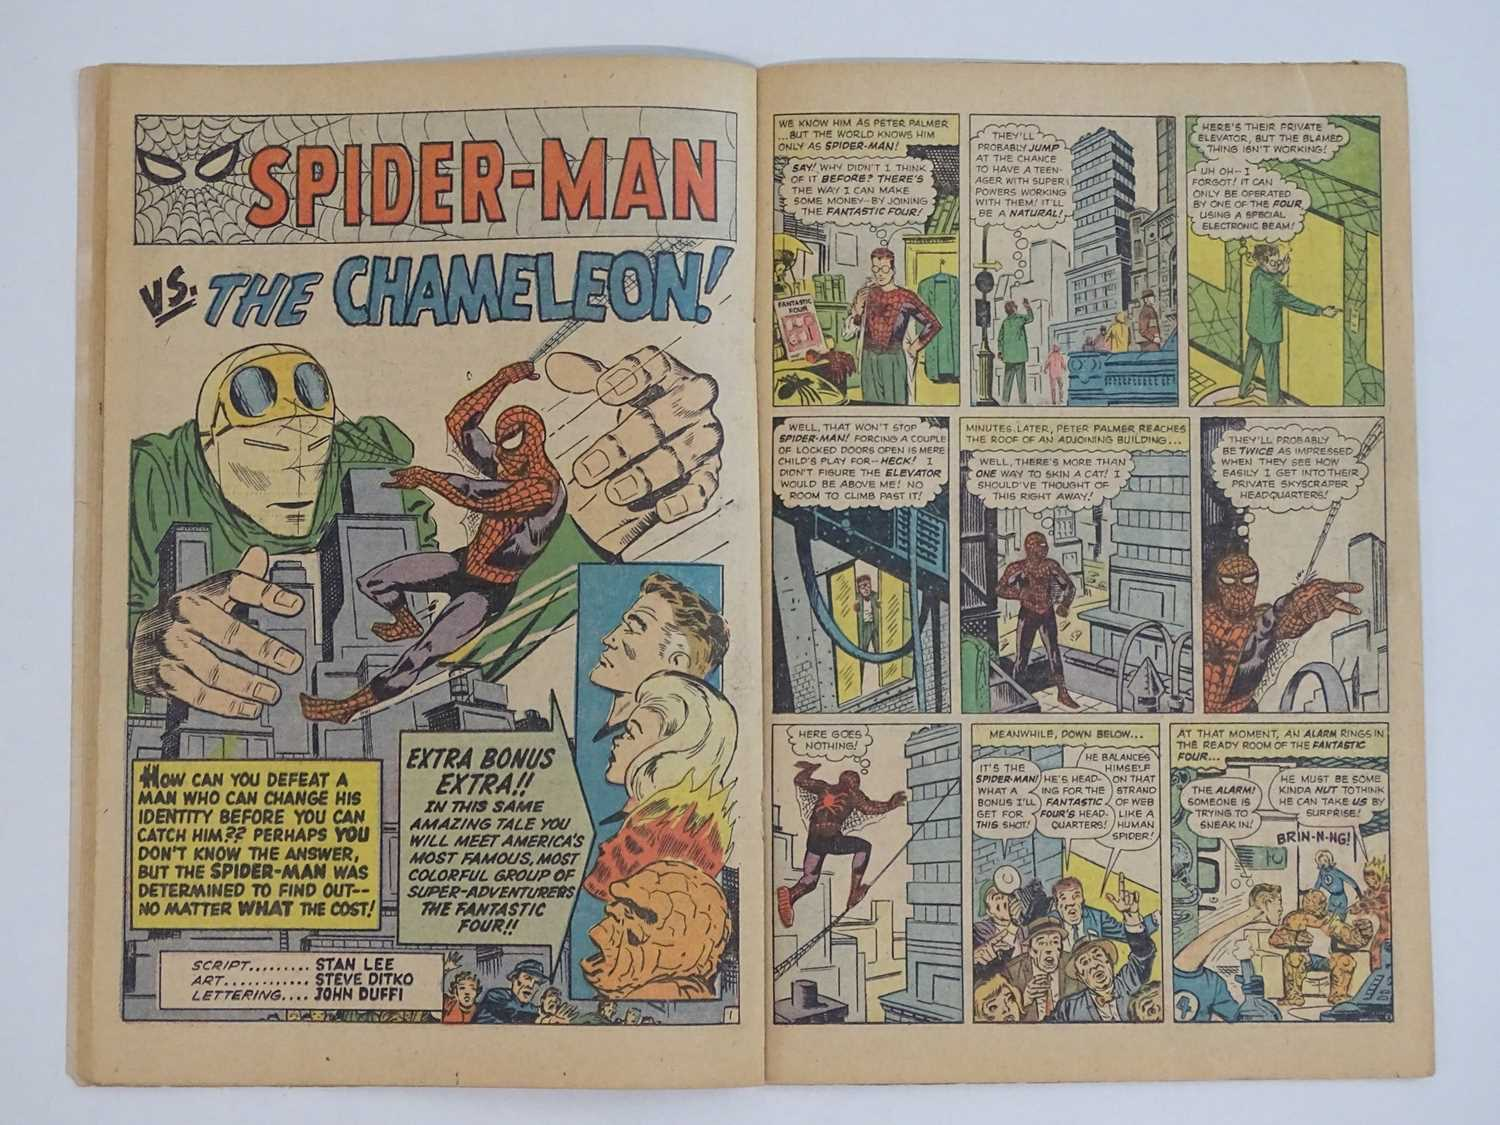 AMAZING SPIDER-MAN #1 - (1963 - MARVEL - UK Price Variant) - First appearance of Spider-Man un his - Image 20 of 27